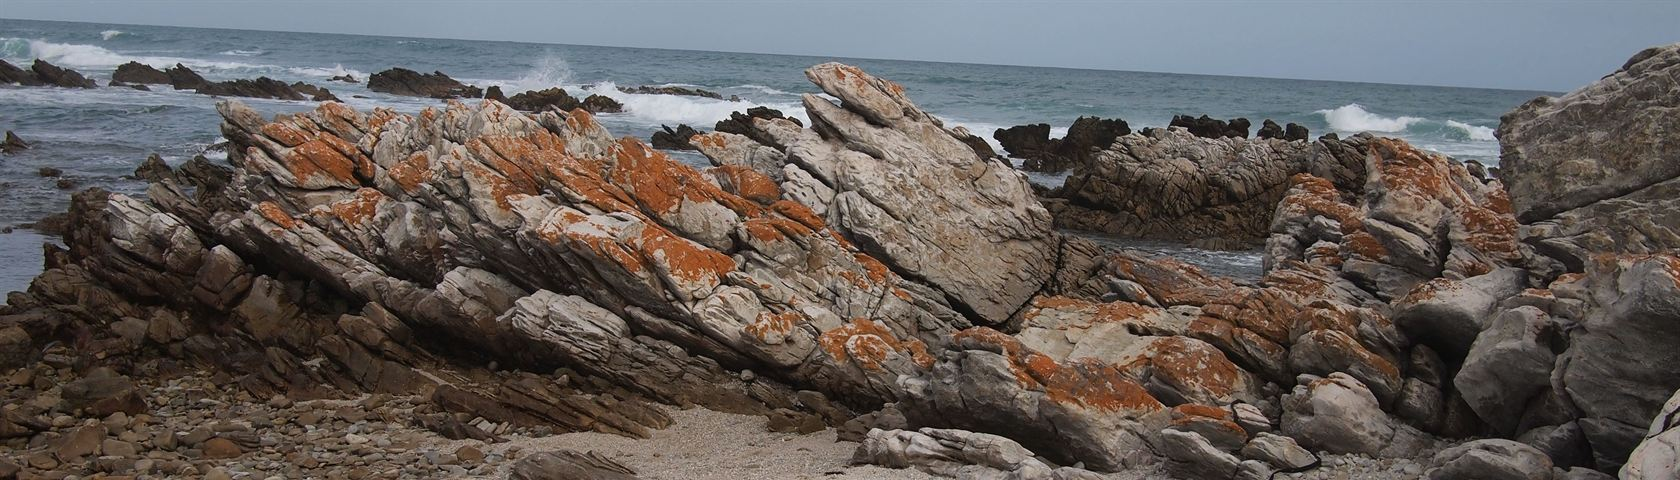 Cape Agulhas, the Most Southern Tip of Africa